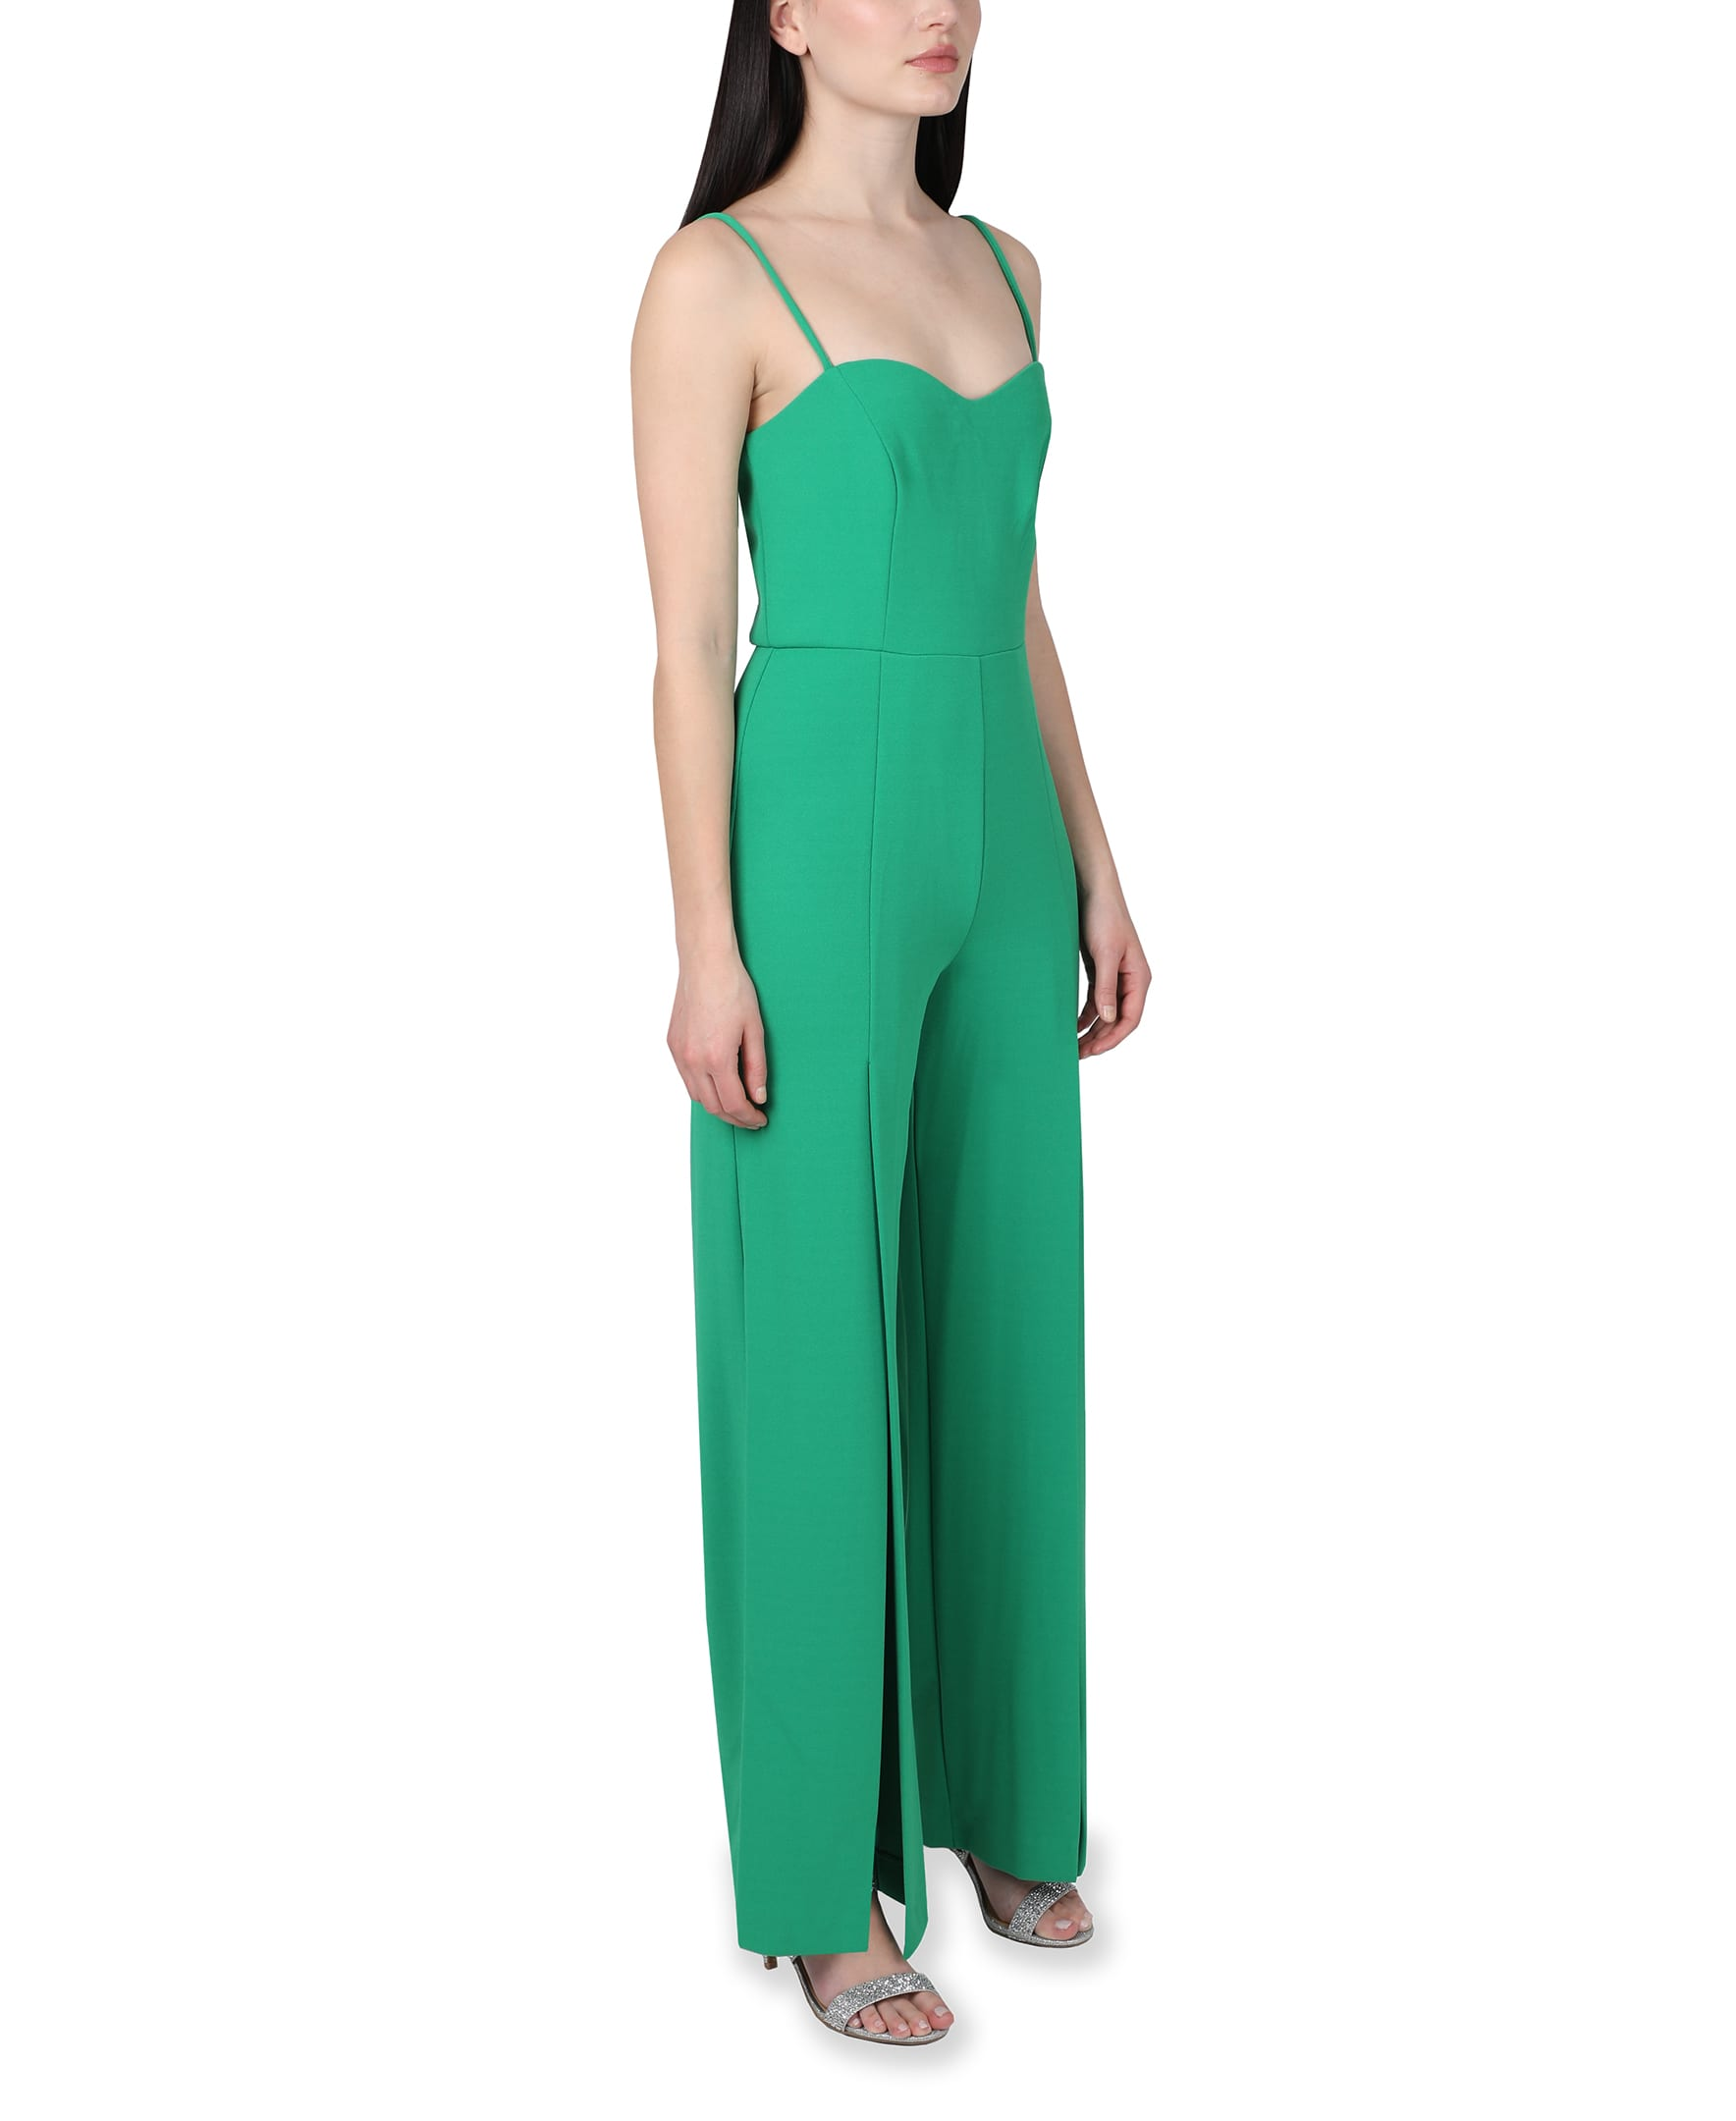 Bebe Open Leg Jumpsuit - green - Front